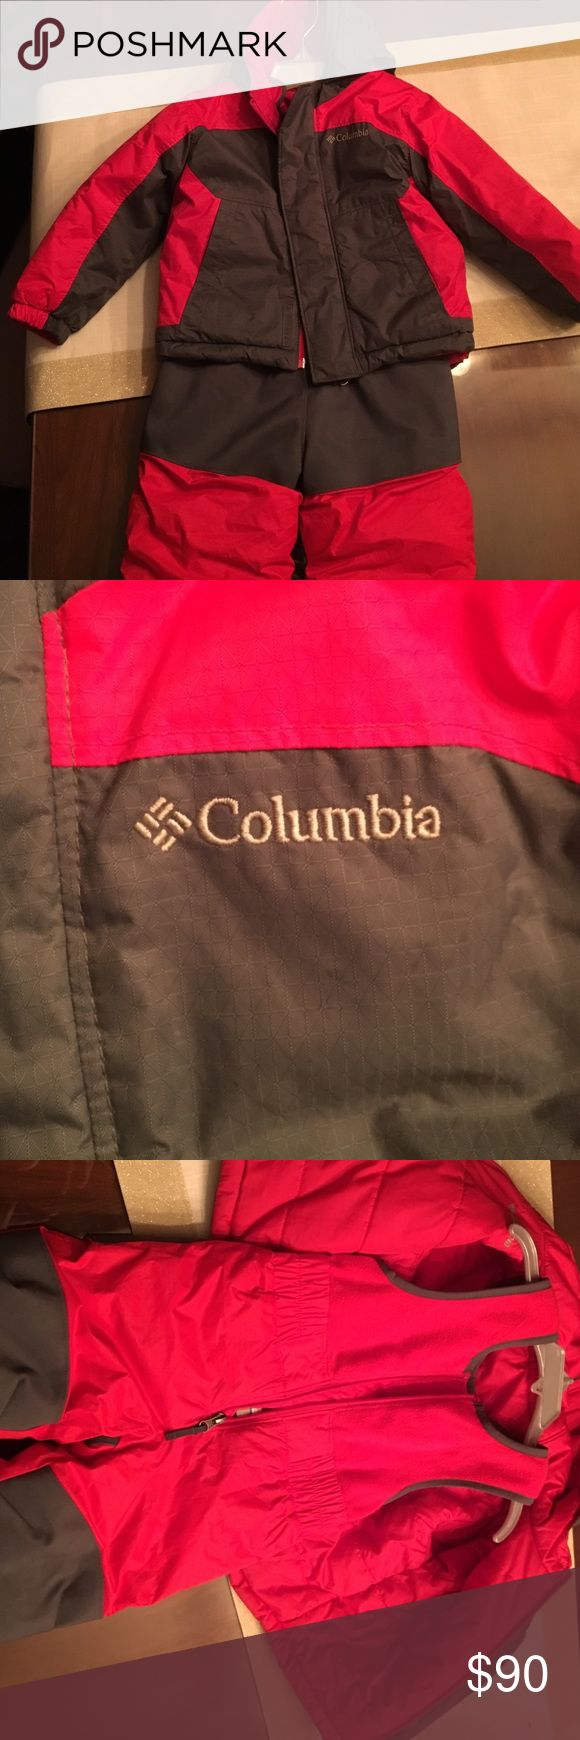 Reversible Red Columbia snow suit Used once just like new. Reversible Colombia snow suit insulated with fleece and DRI TECH technology. Keeps baby nice and warm. Down feather reversible sides. Velcro body snow suit with padded gray knees so wet snow can't get in. Hooded with draws to keep face warm.OUTGROWN™ grow system that gives you up to 2T in length. Columbia Jackets & Coats Puffers